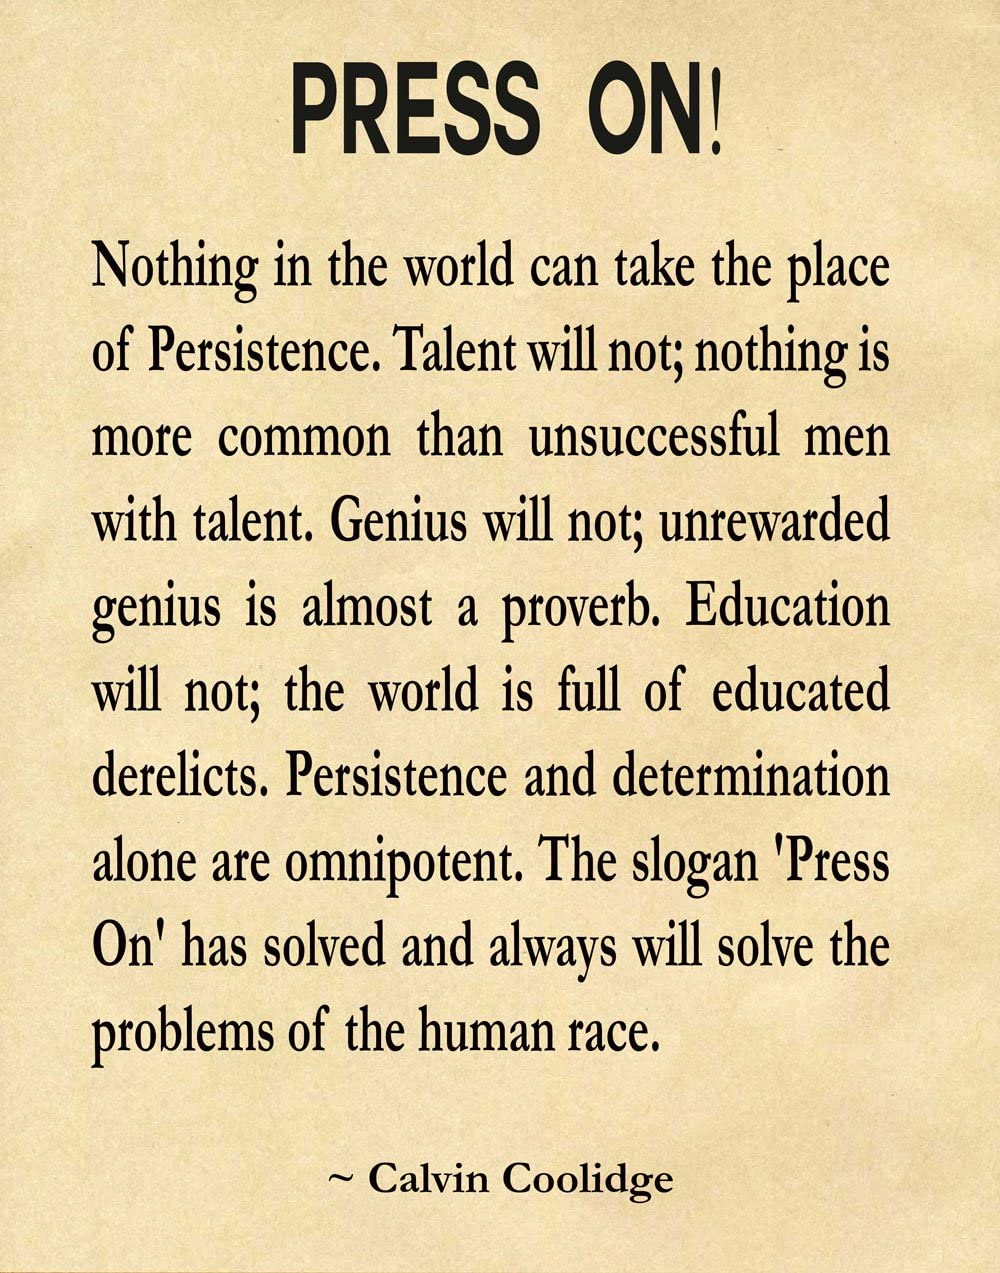 Amazon Com Press On By Calvin Coolidge Perseverance Quote Inspiring Quote Motivating Quote Motivational Wall Art Graduation Gift Graduation Print 8 X 10 Ivory Posters Prints